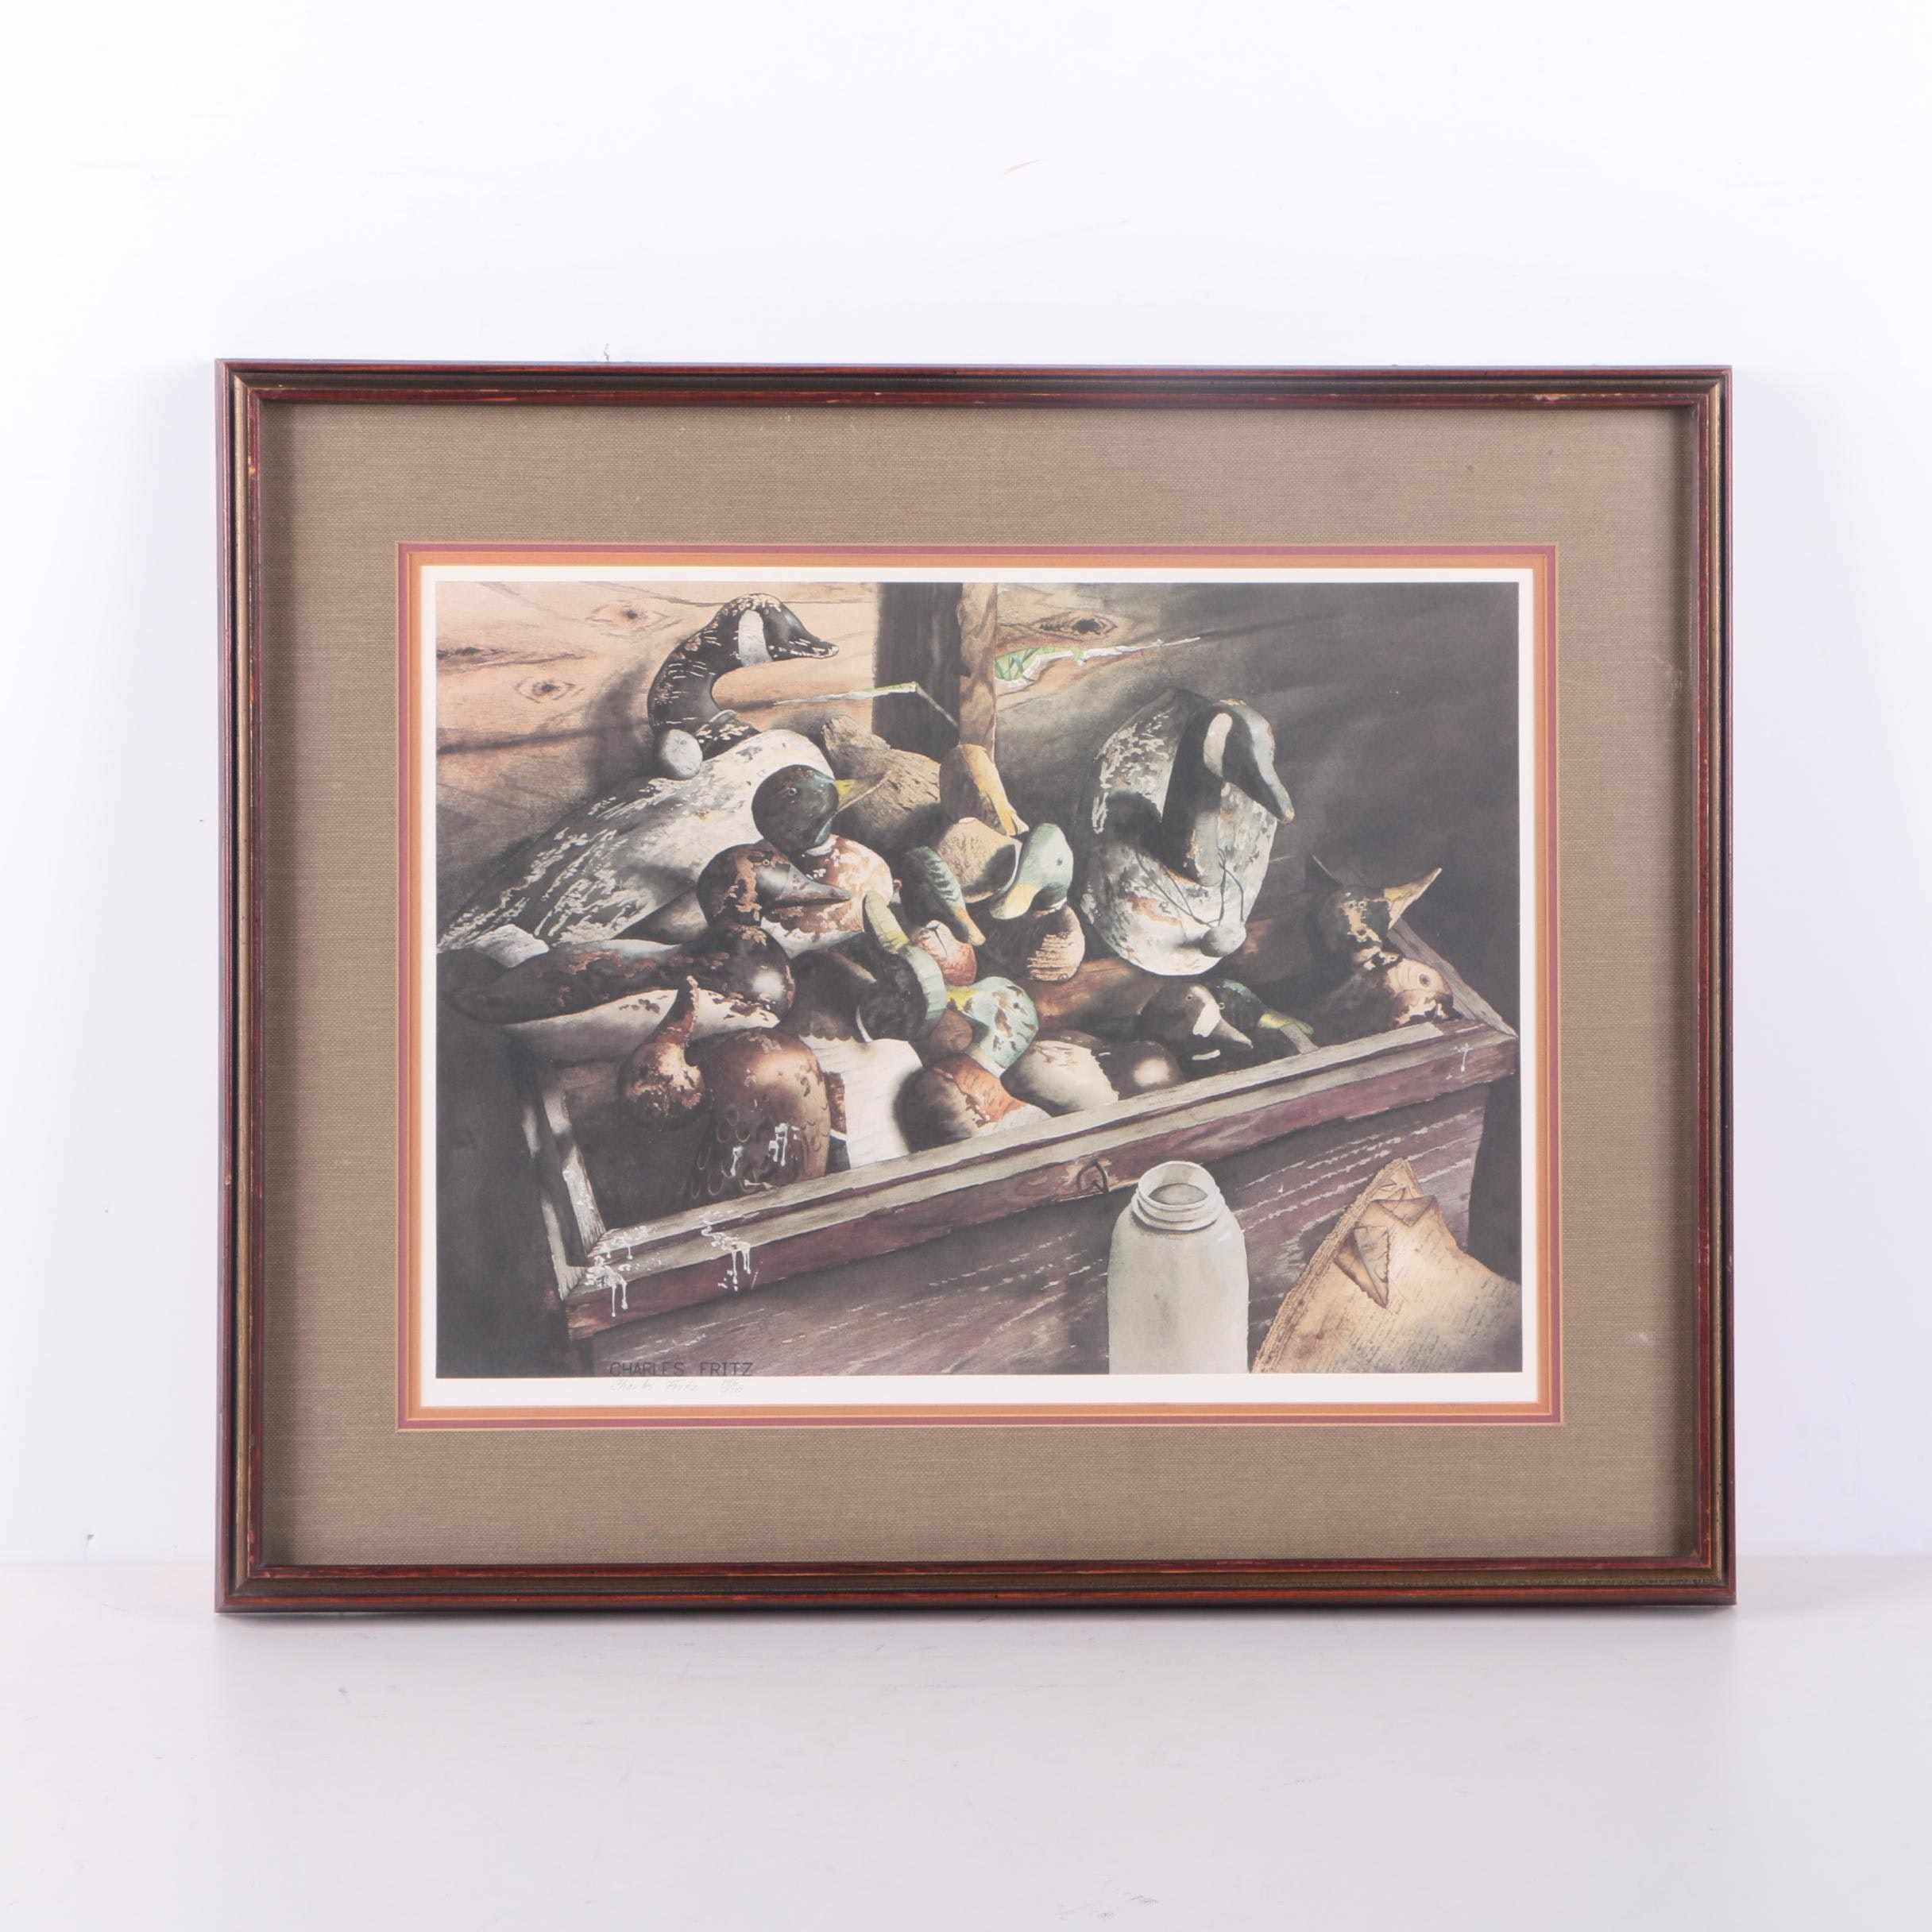 Charles Fritz Limited Edition Offset Lithograph of Used Decoy in a Box